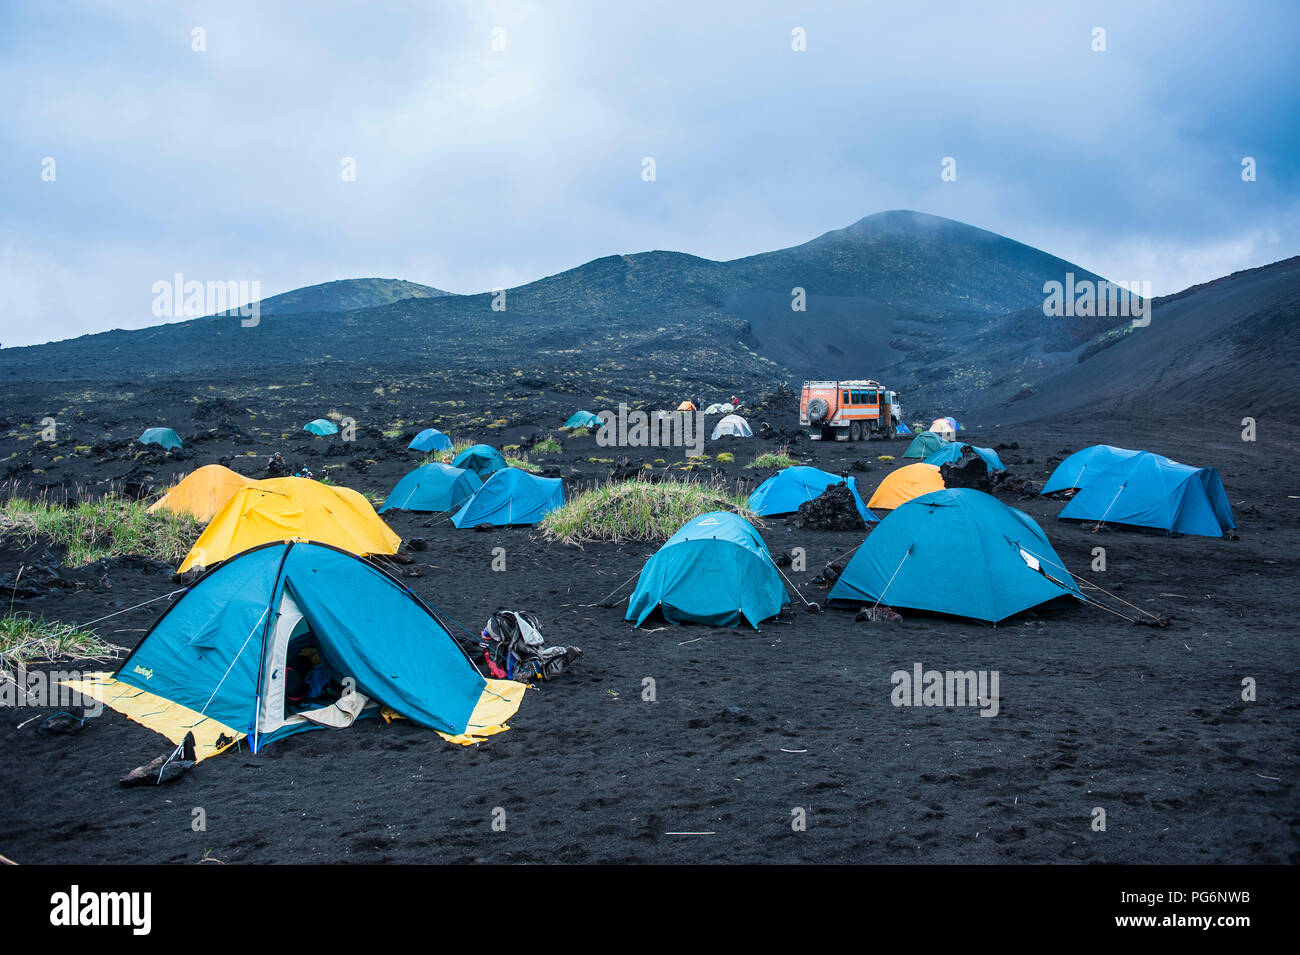 Tourist campsite at the Tolbachik volcano, Kamchatka, Russia - Stock Image